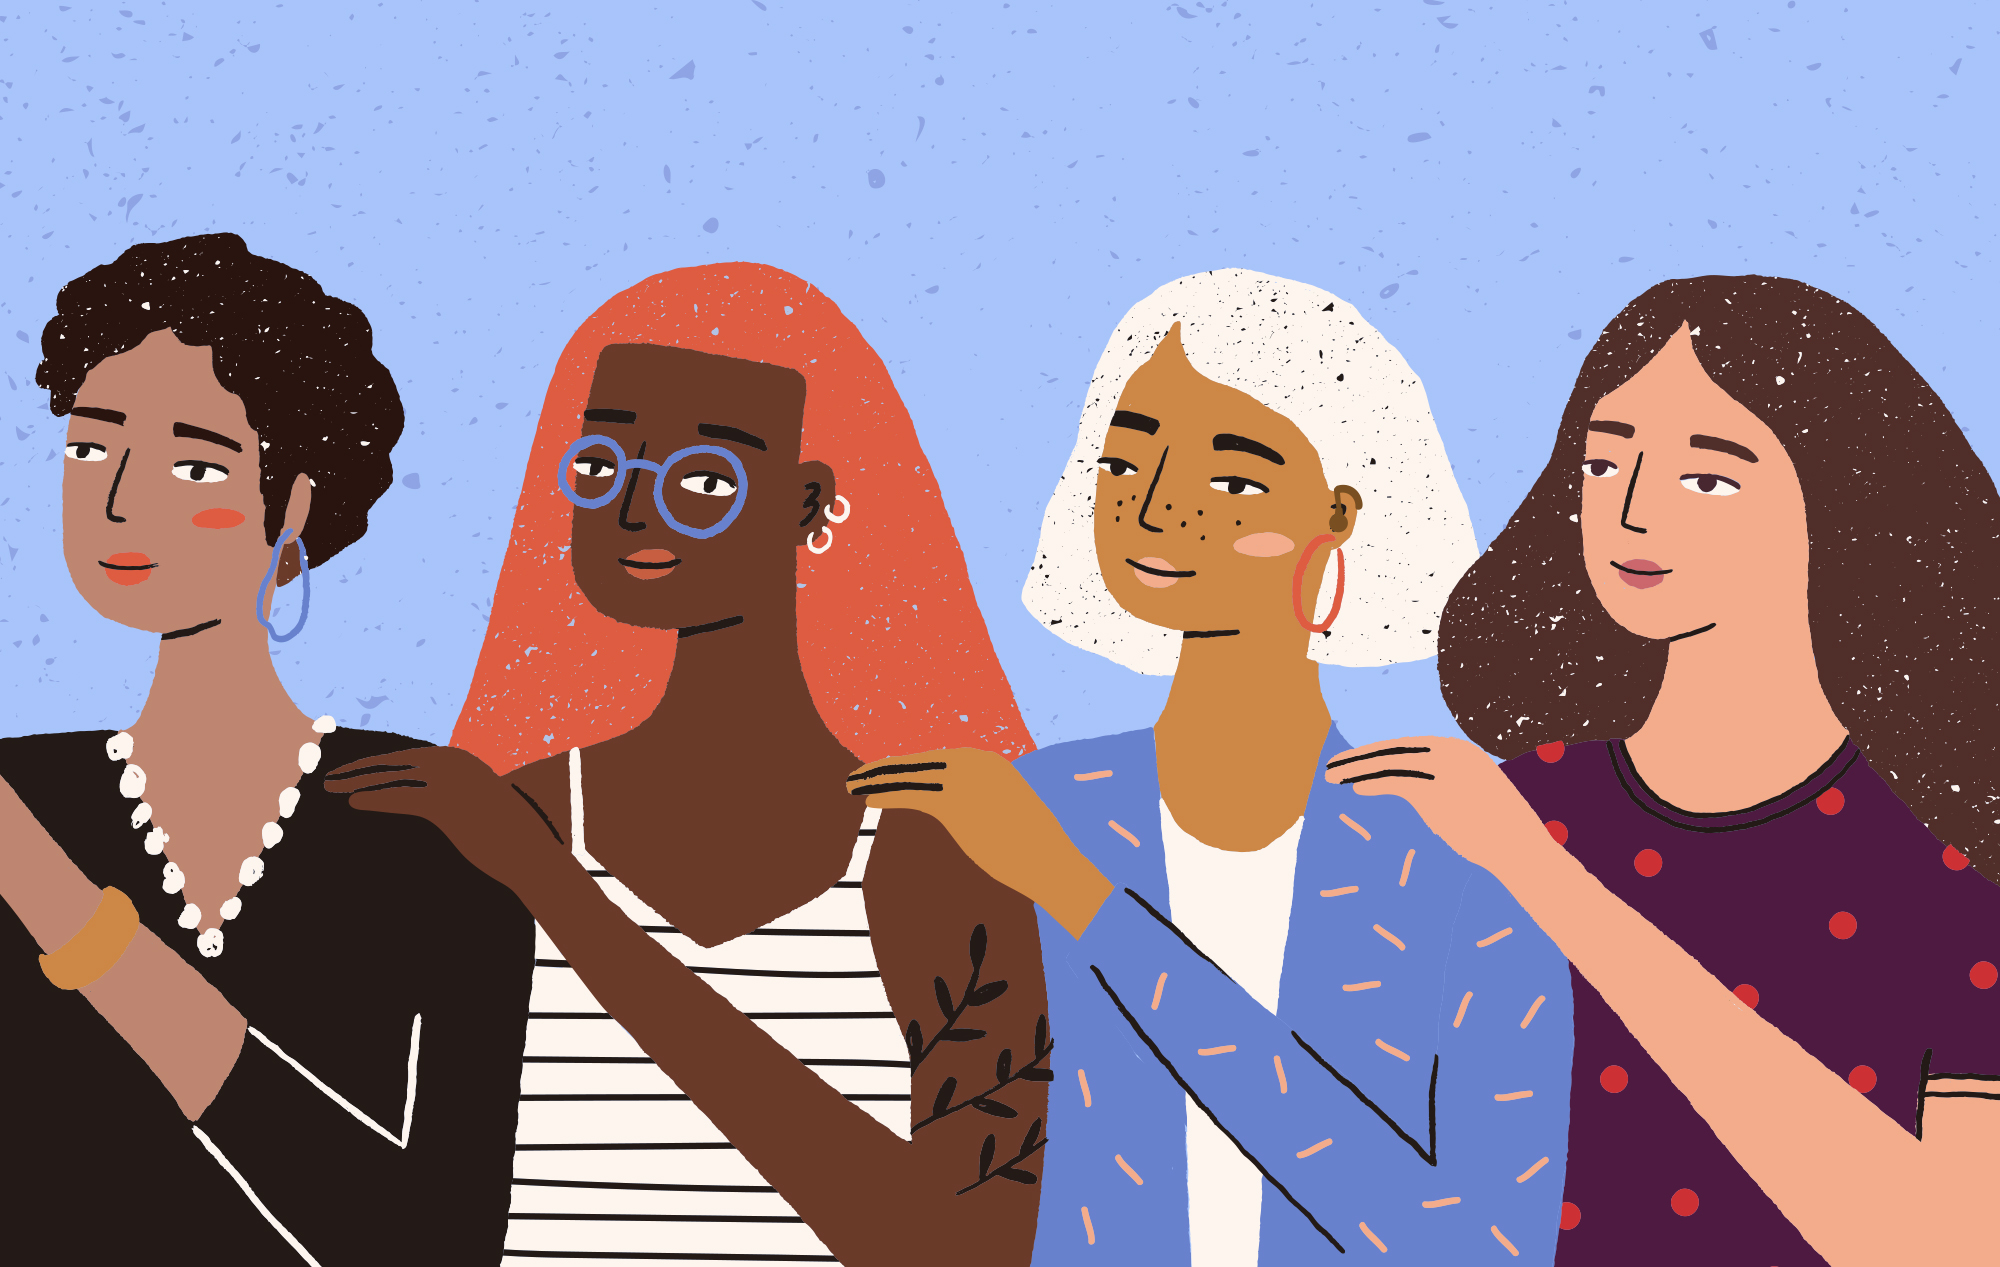 An illustration of a group of women standing together with their hands on one another's shoulders.